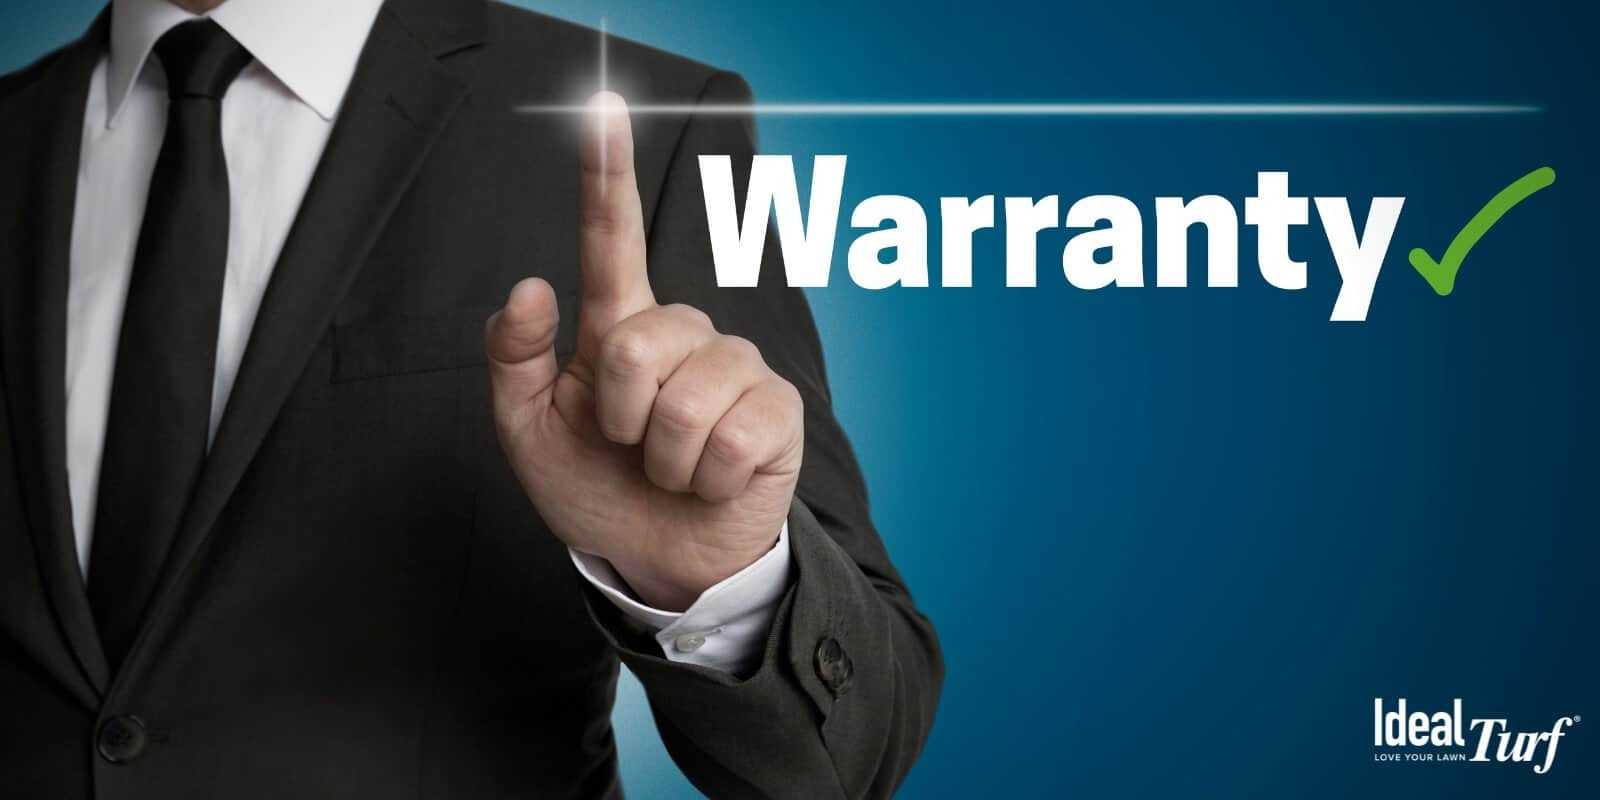 26. What Type of Warranty